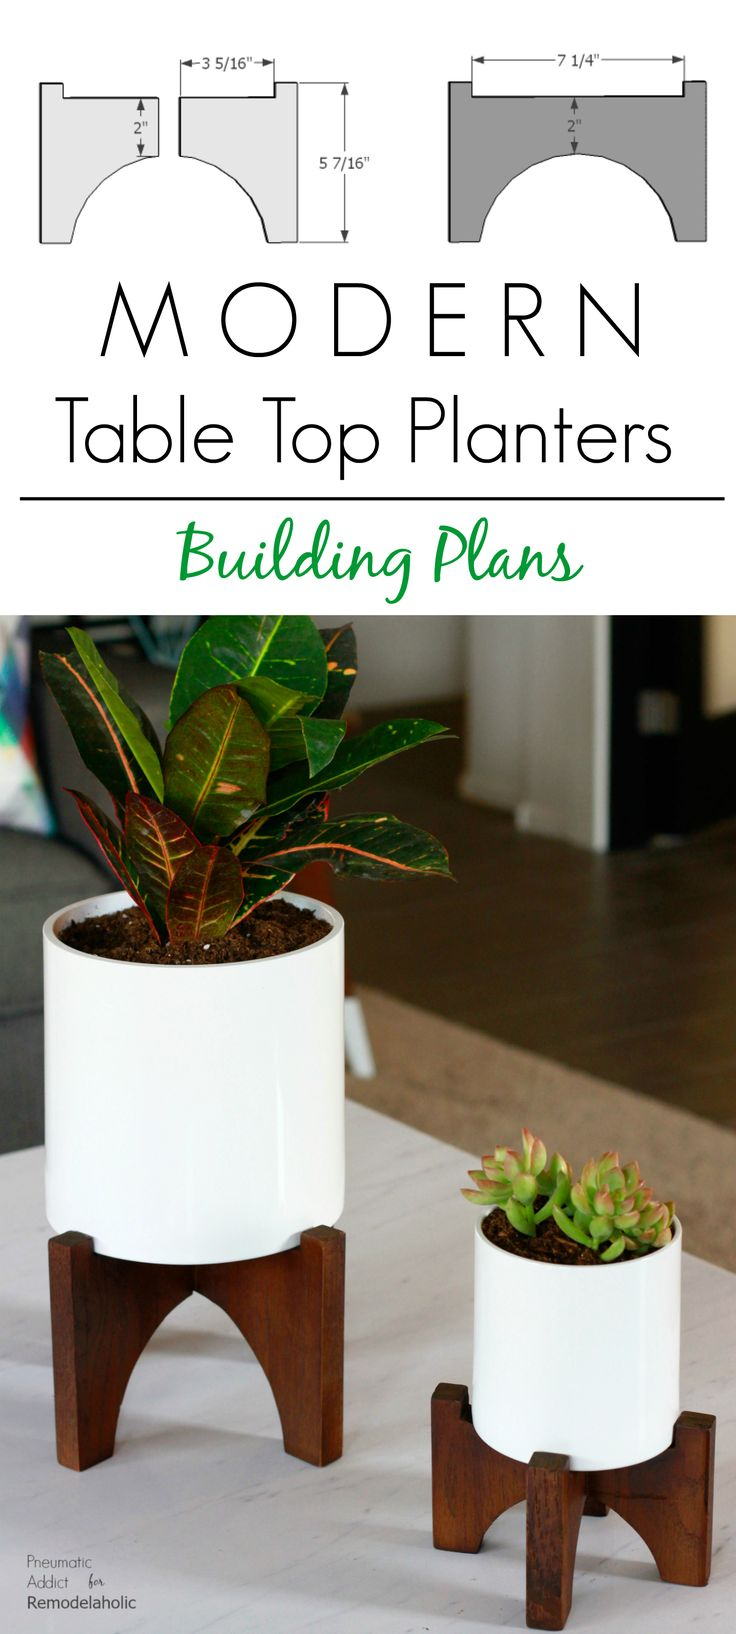 Modern Table Top Planters Building Plans | Elevate your house plants with these modern wood tabletop planters that you can make in a few hours! Get the full tutorial and building template from Pneumatic Addict on Remodelaholic.com